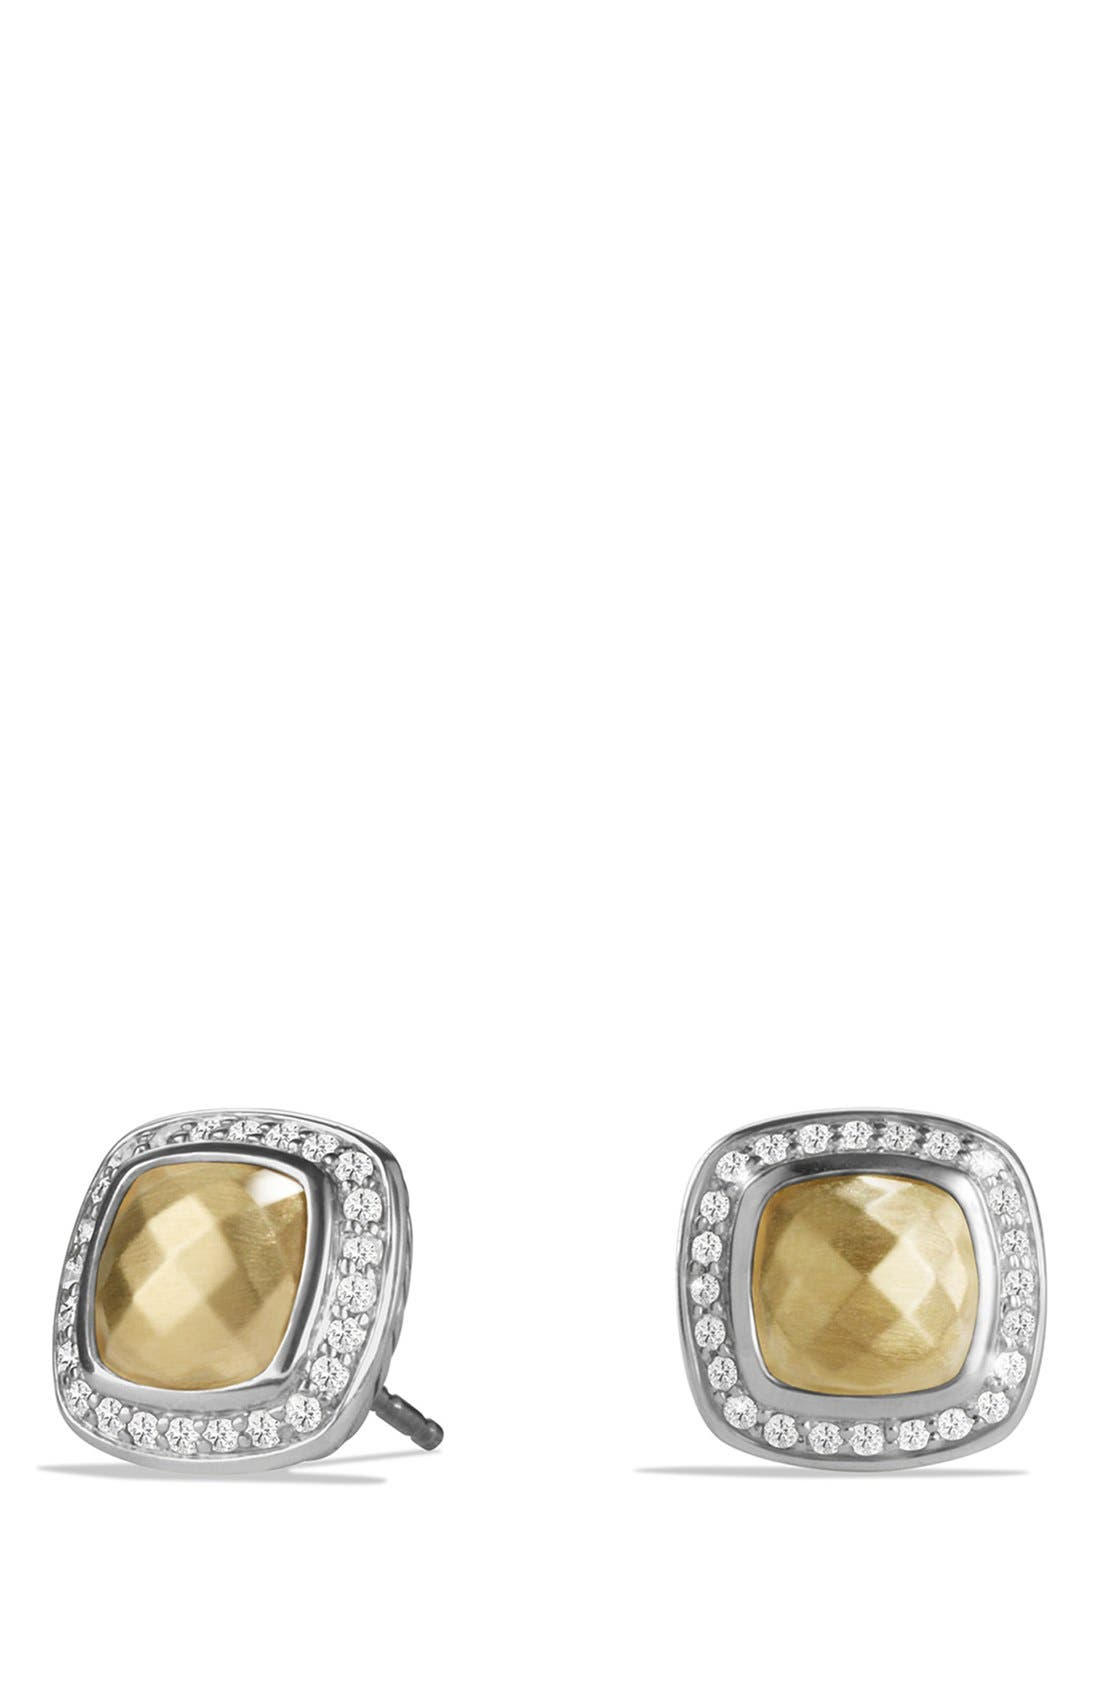 'Albion' Earrings with 18K Gold Dome and Diamonds,                         Main,                         color, GOLD DOME